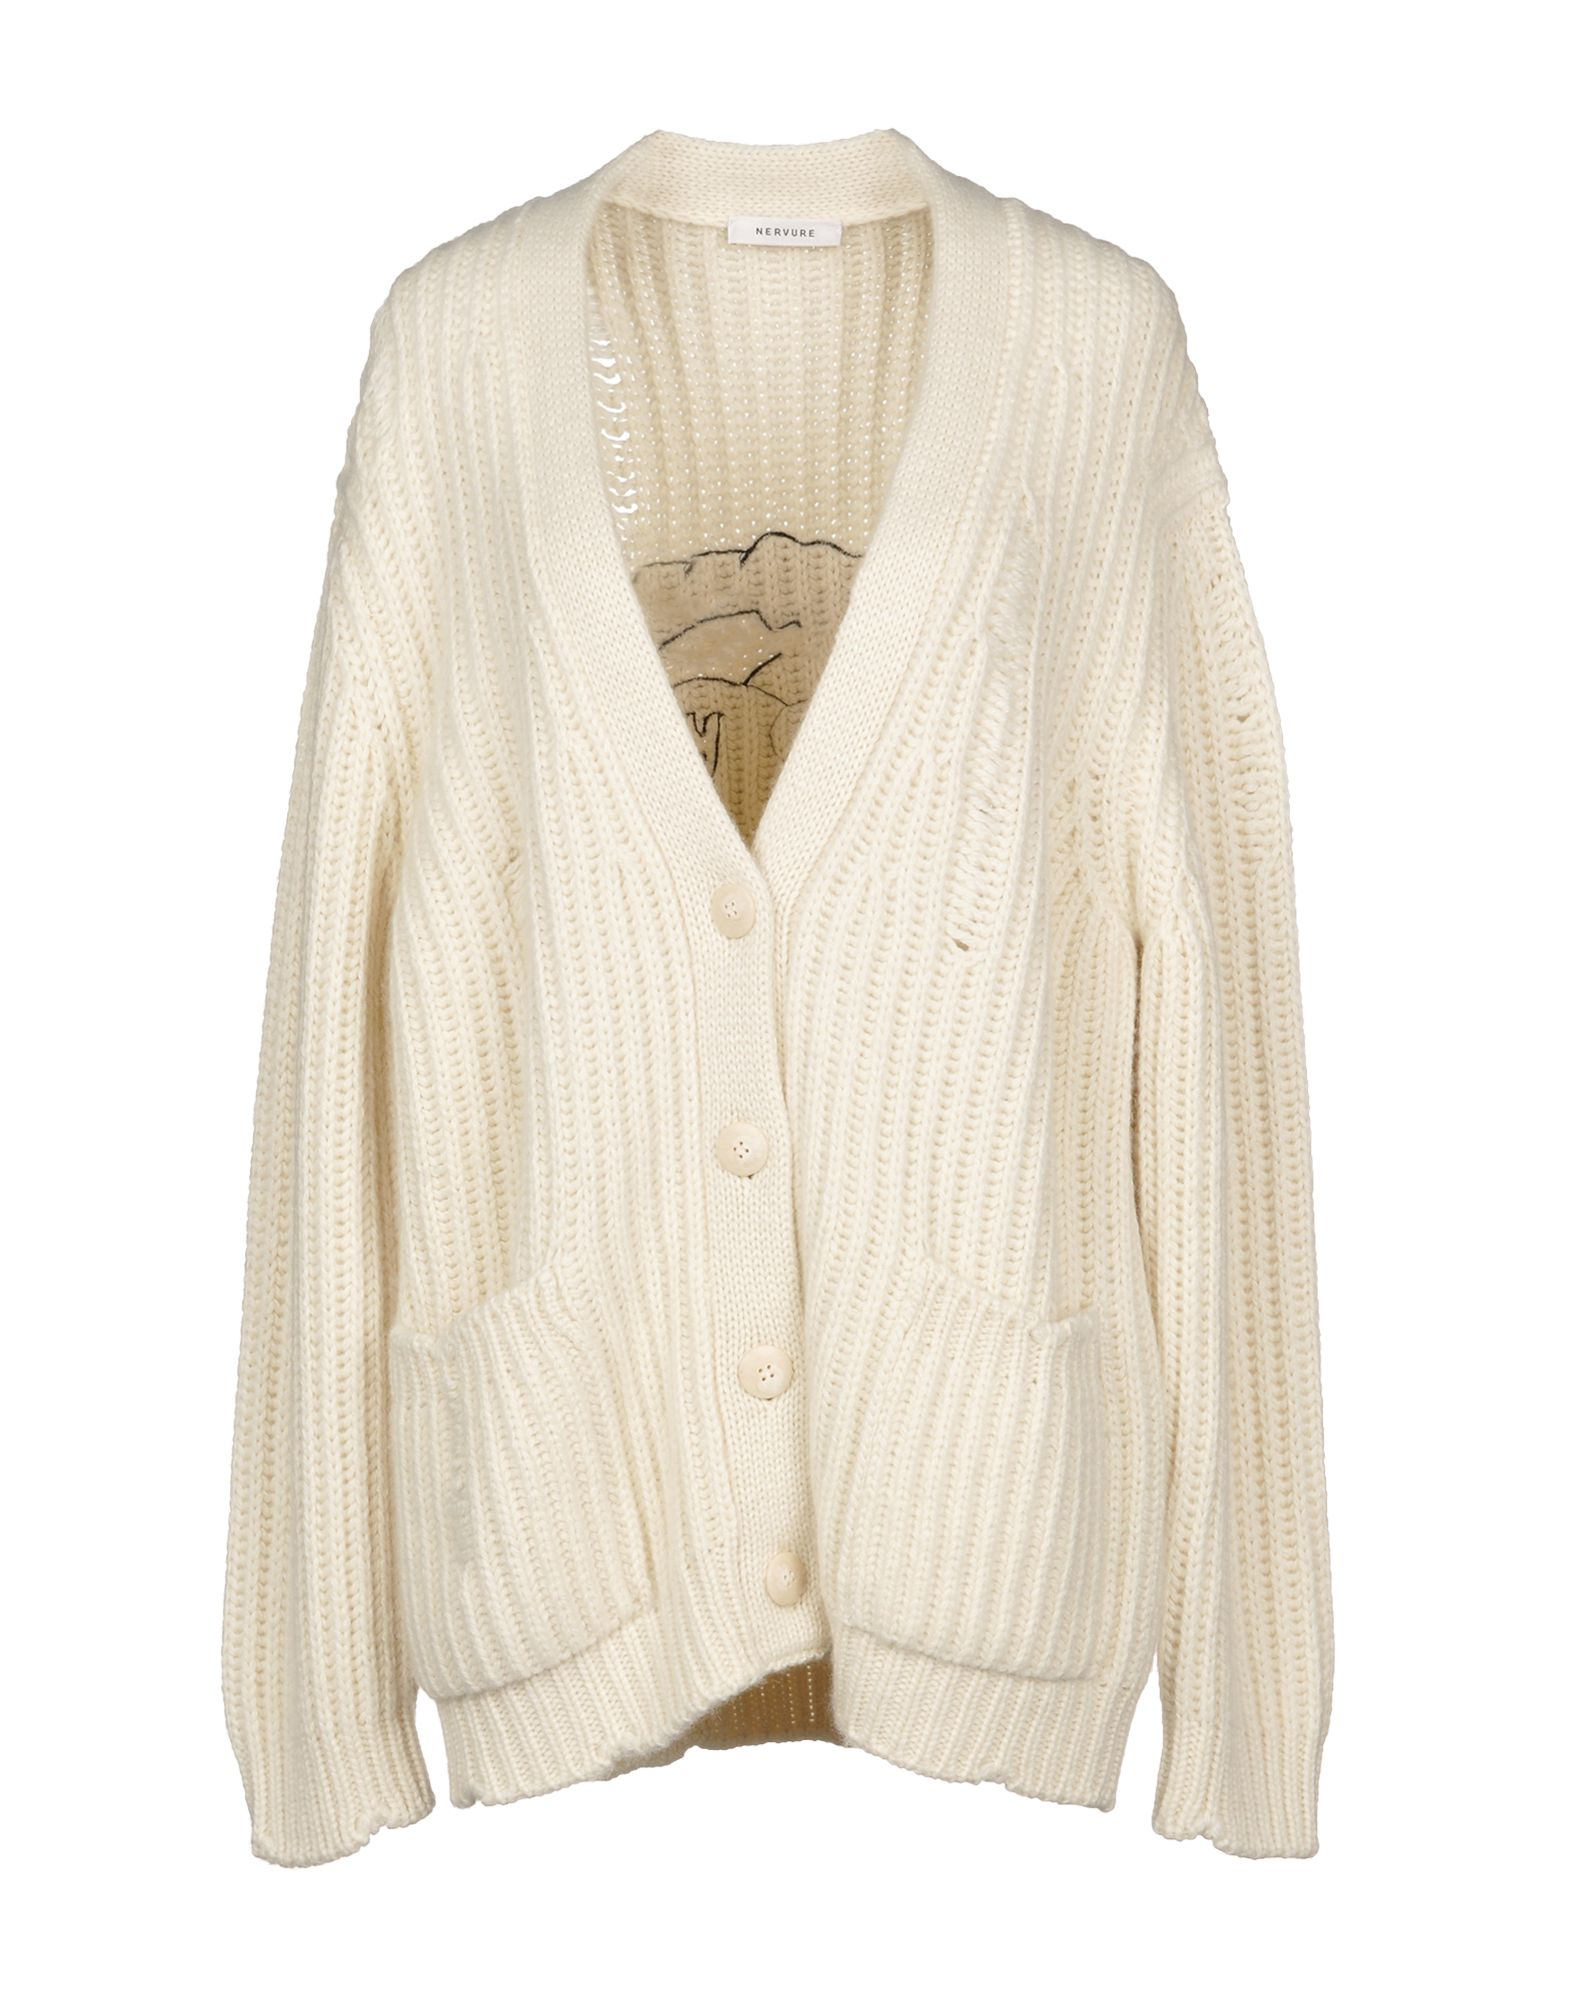 NERVURE Cardigan in Ivory